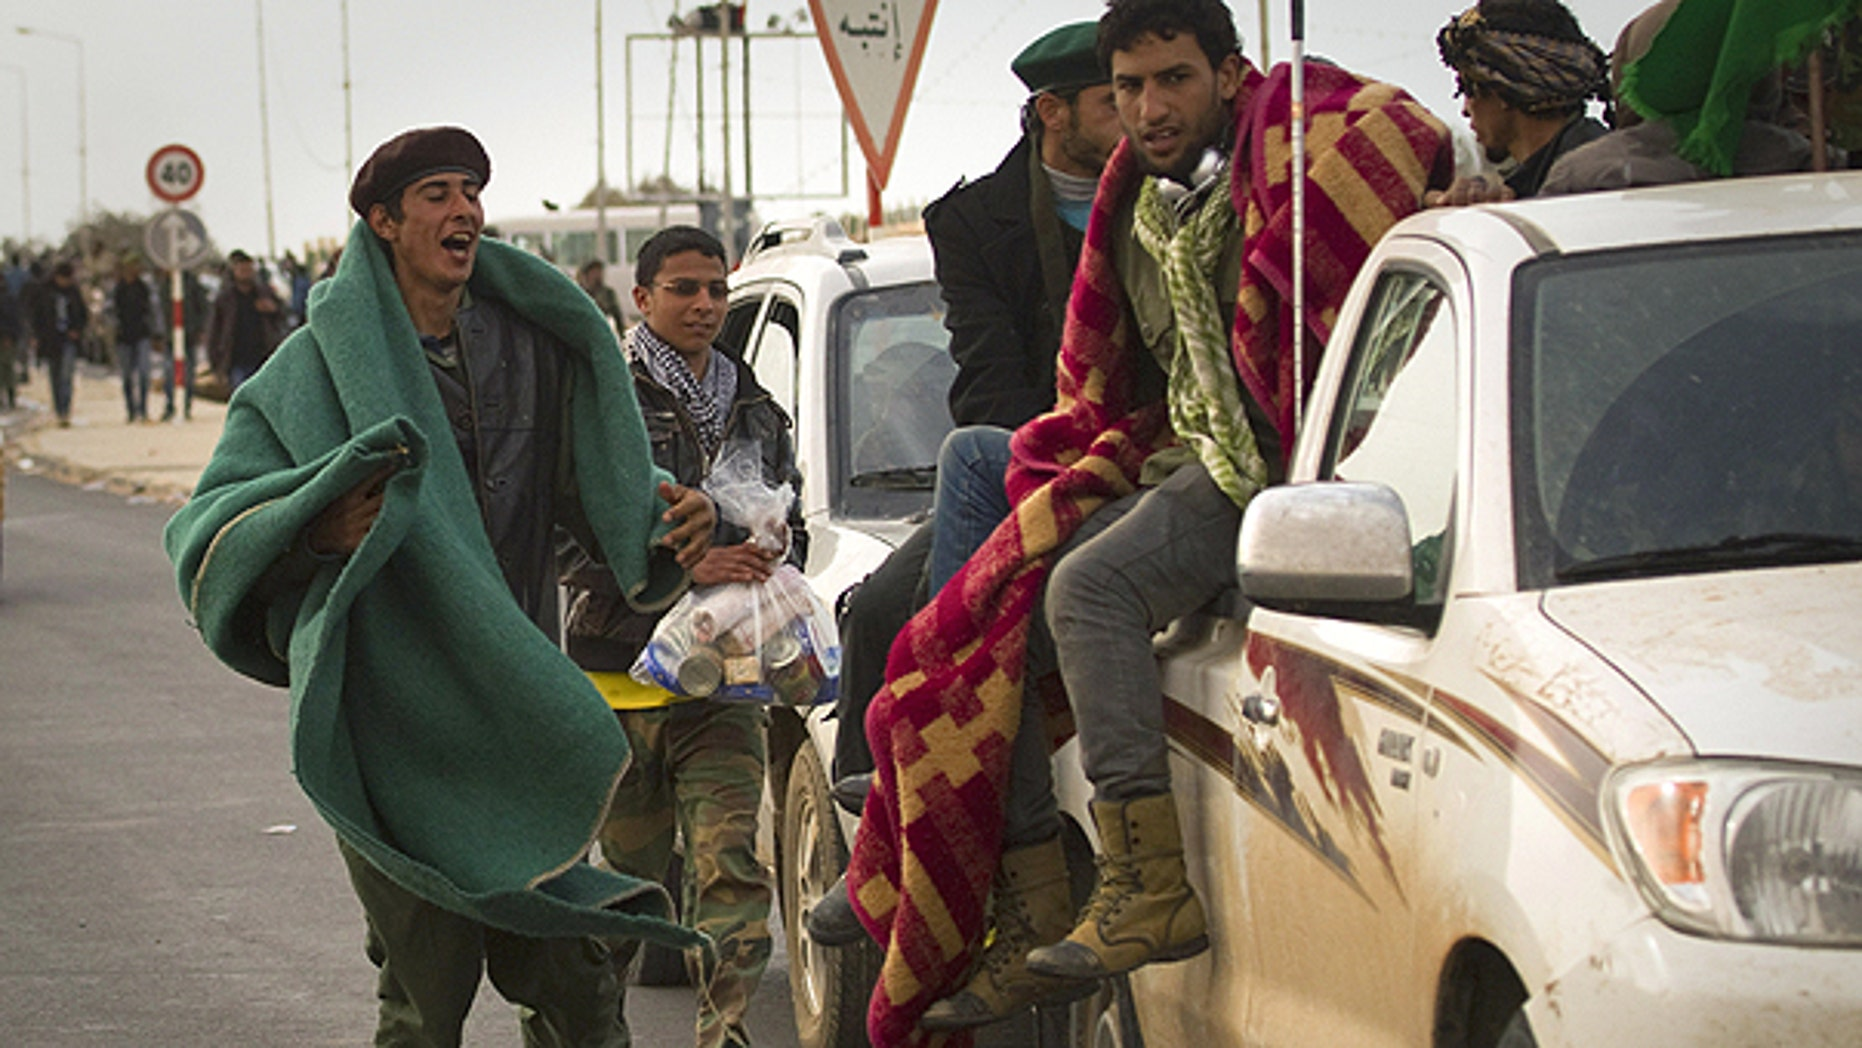 March 29: Libyan rebels run with their belongings as they leave Ras Lanouf, 250 km east of Sirte, central Libya.